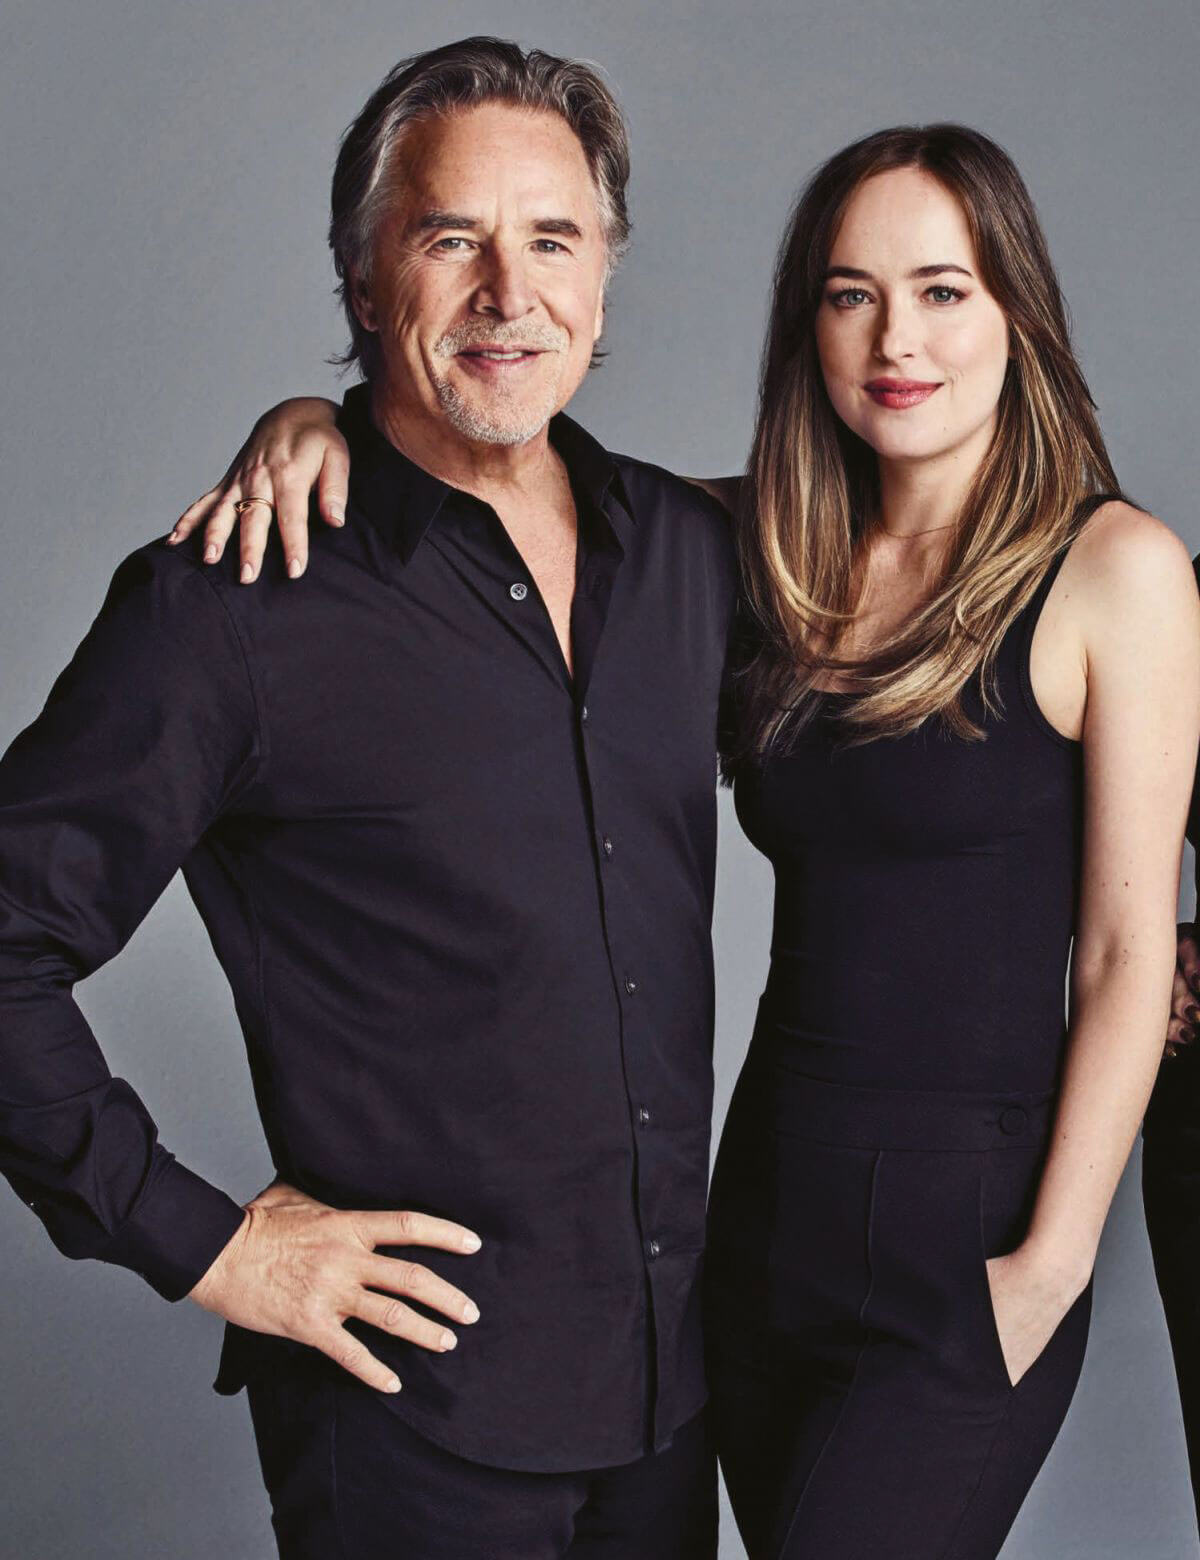 Dakota and Don Johnson Stills for The Hollywood Reporter, December 2017